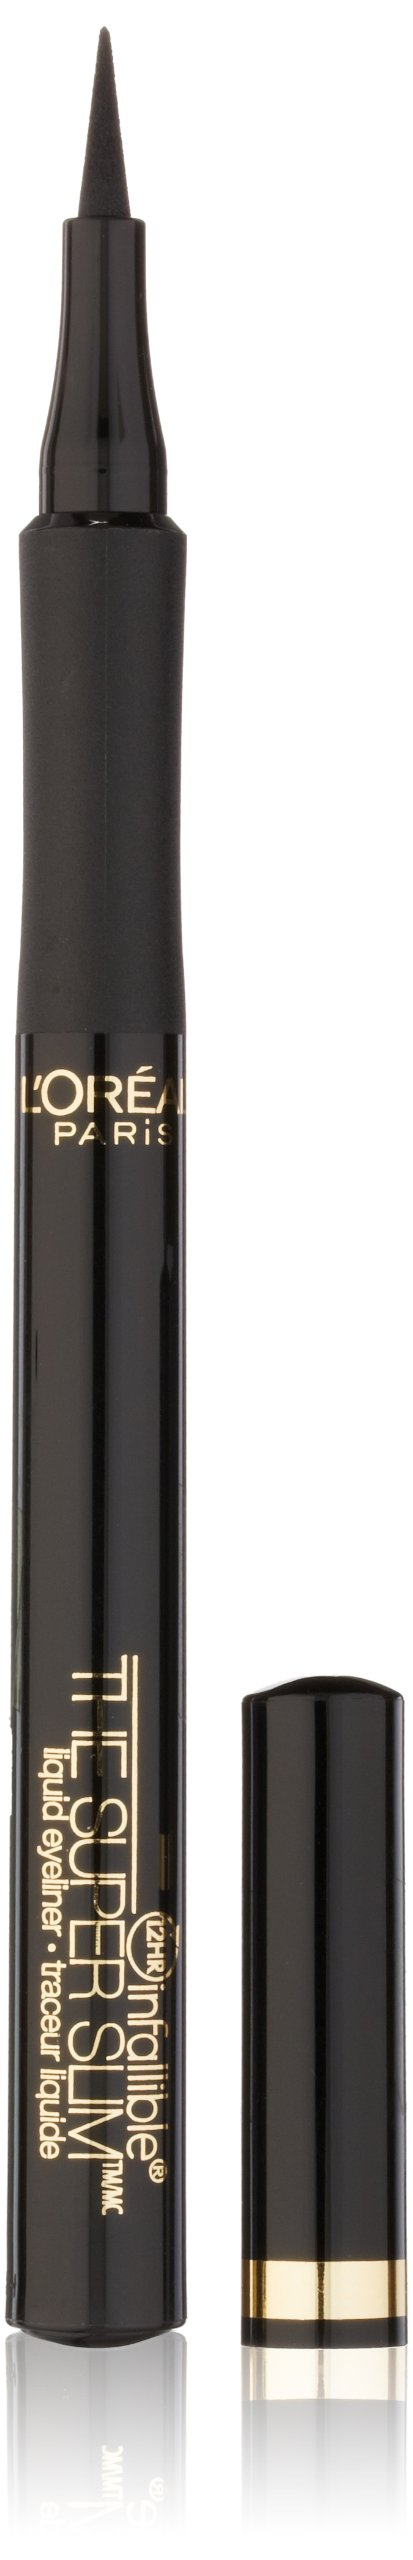 L'Oréal Paris Makeup Infallible Super Slim Long-Lasting Liquid Eyeliner, Black, 0.034 fl. oz.